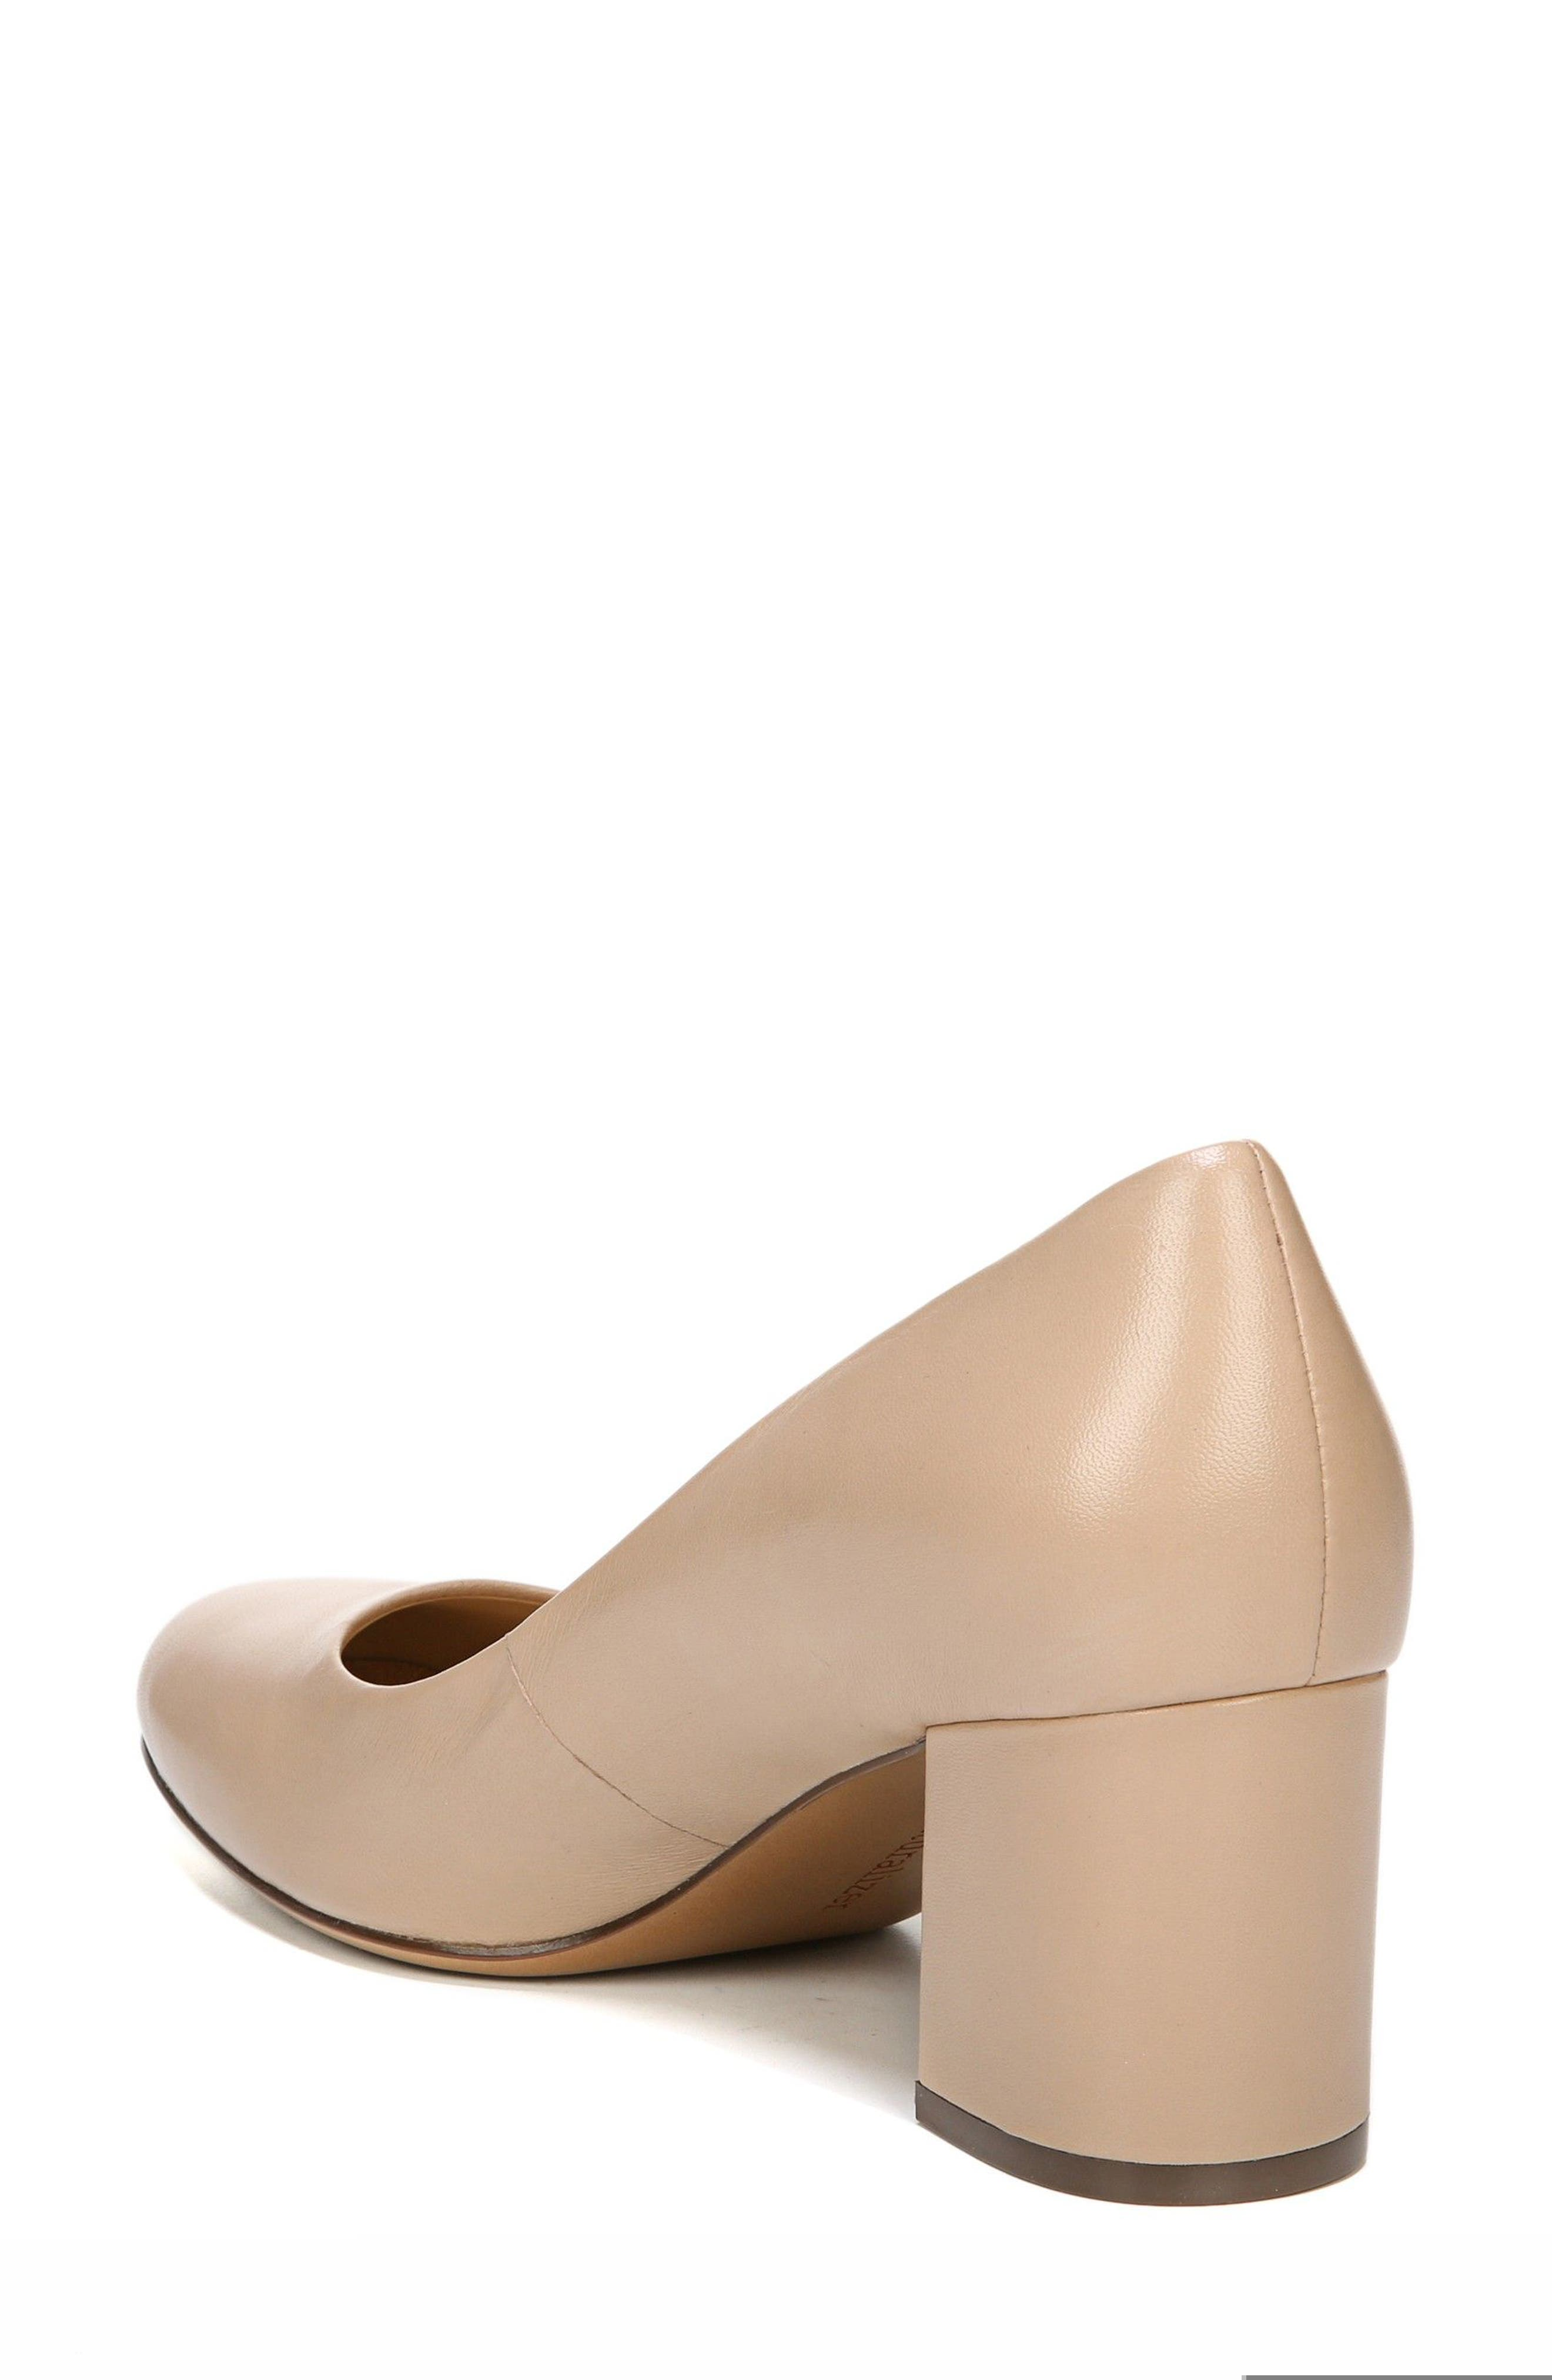 Whitney Pump,                             Alternate thumbnail 2, color,                             TENDER TAUPE LEATHER